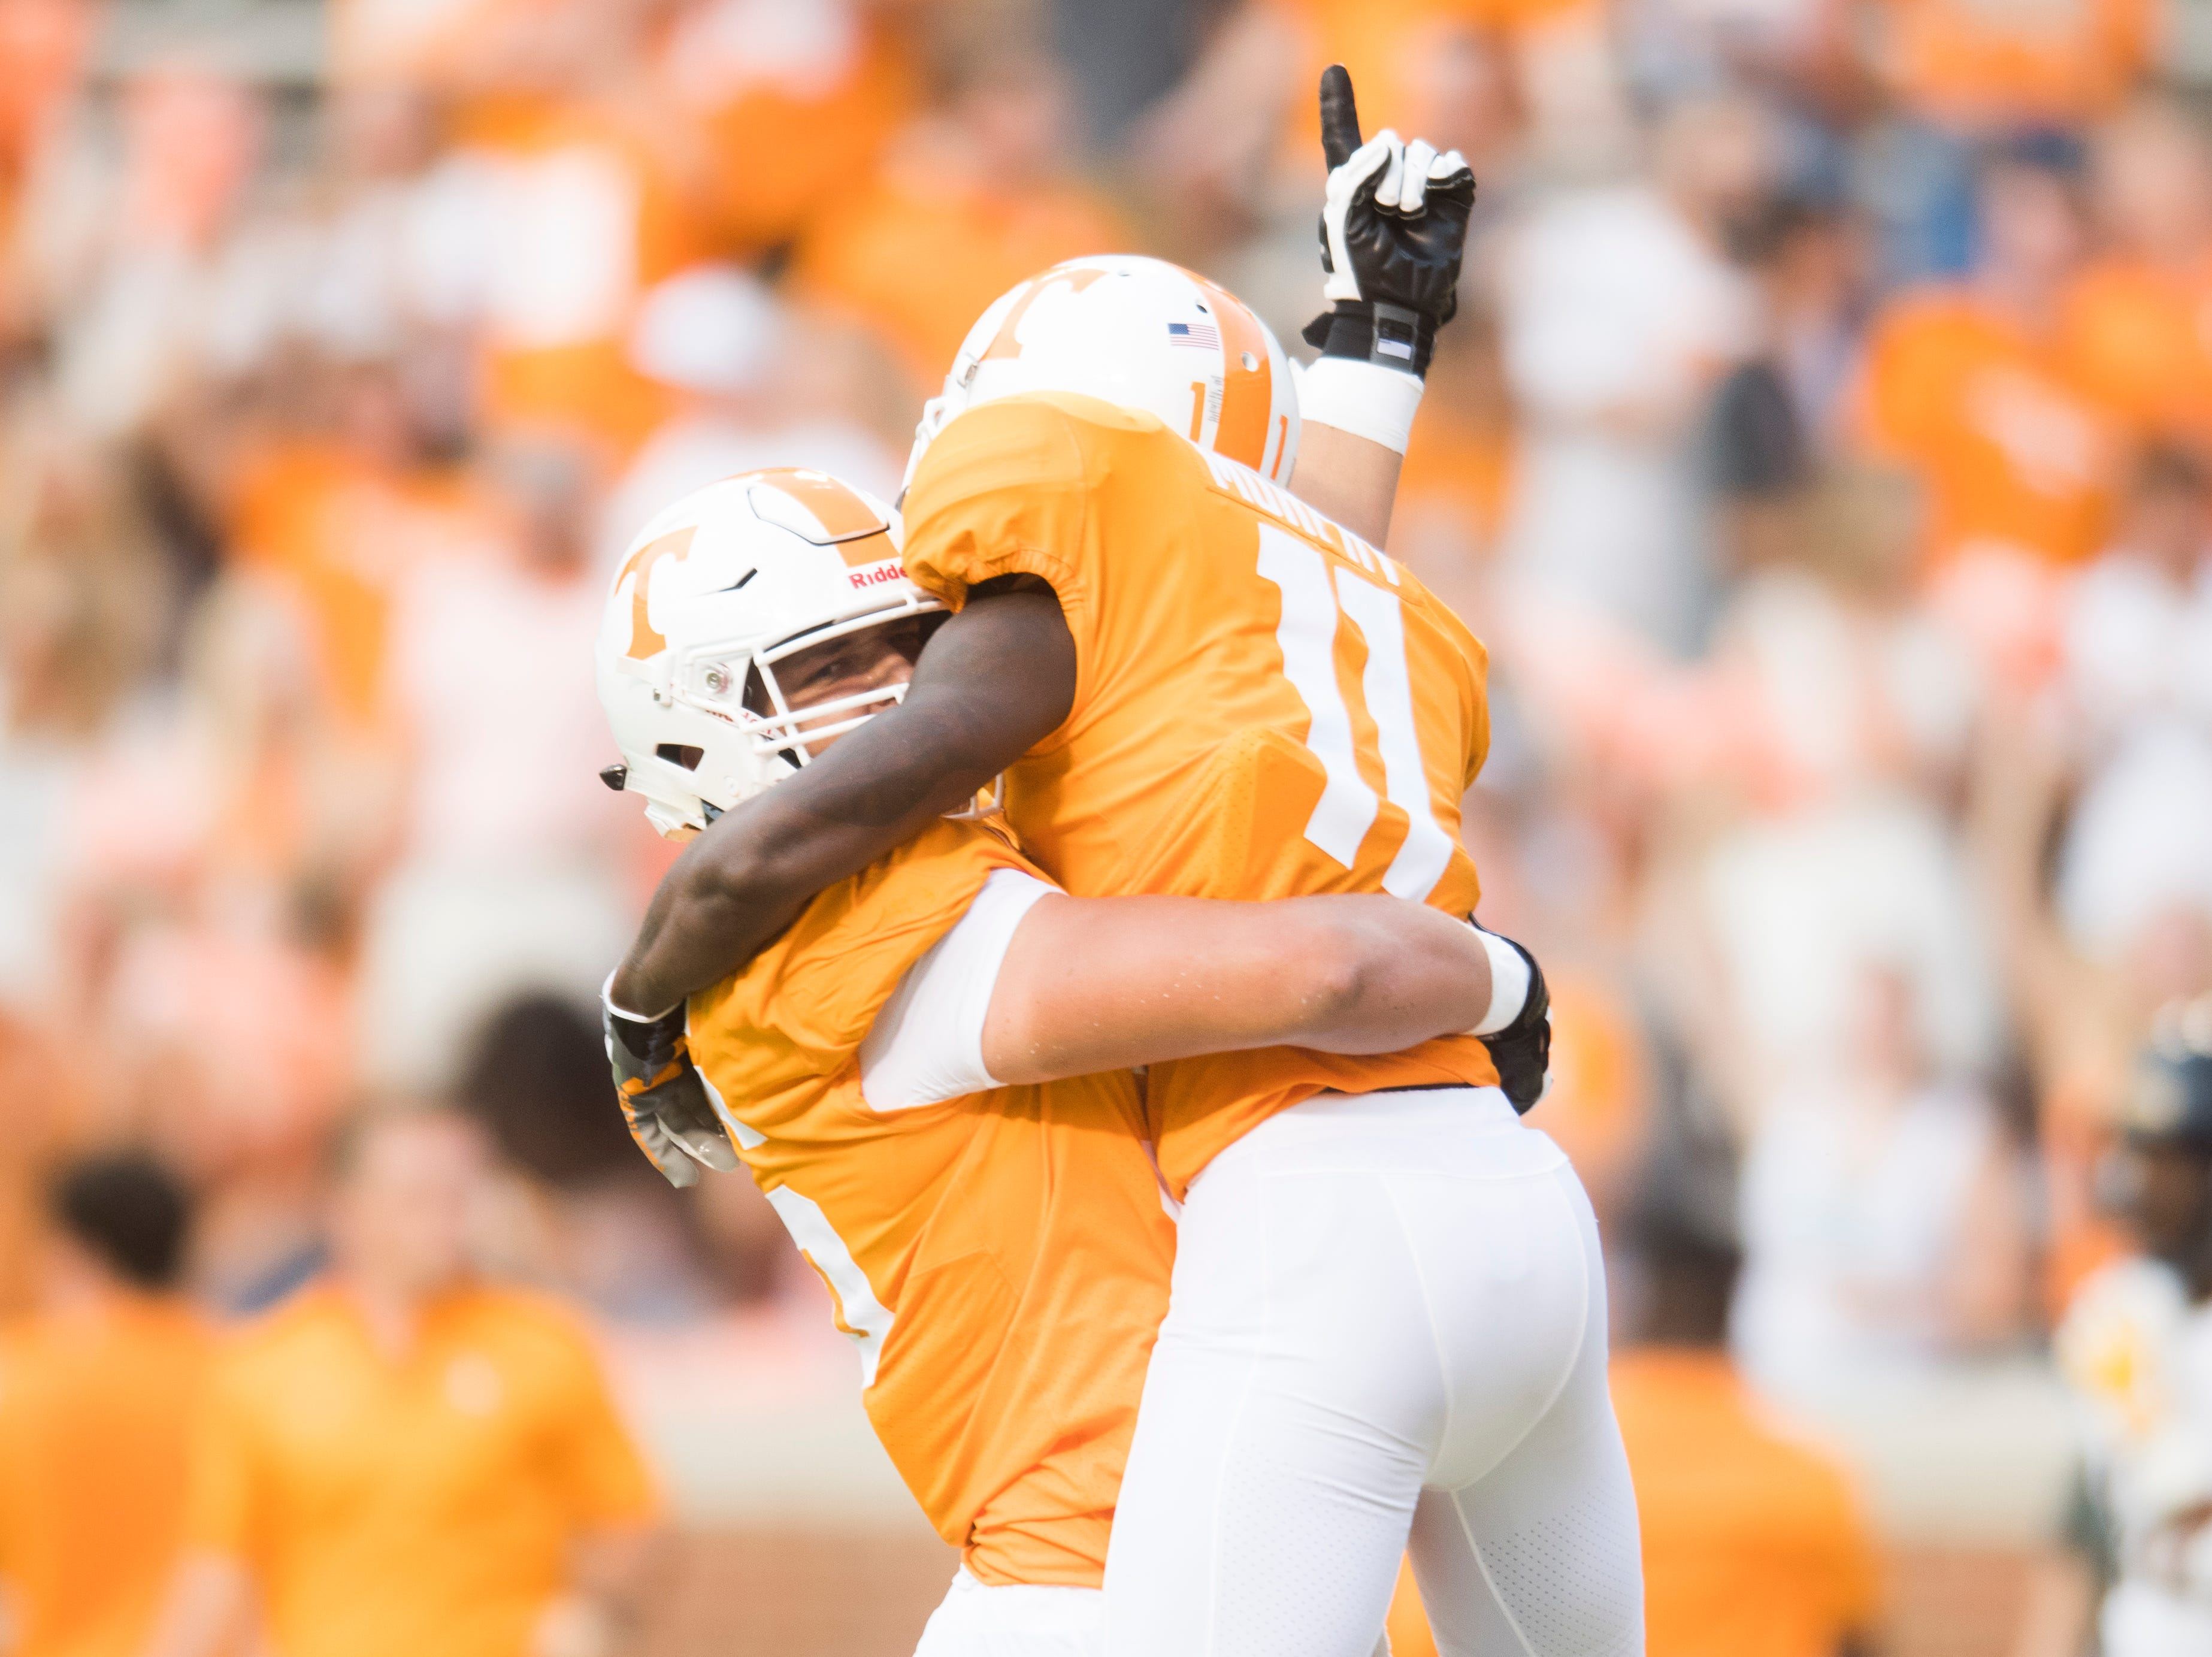 Tennessee offensive lineman Riley Locklear (56) congratulates Tennessee wide receiver Jordan Murphy (11) on a touchdown during a game between Tennessee and ETSU at Neyland Stadium in Knoxville, Tennessee on Saturday, September 8, 2018.